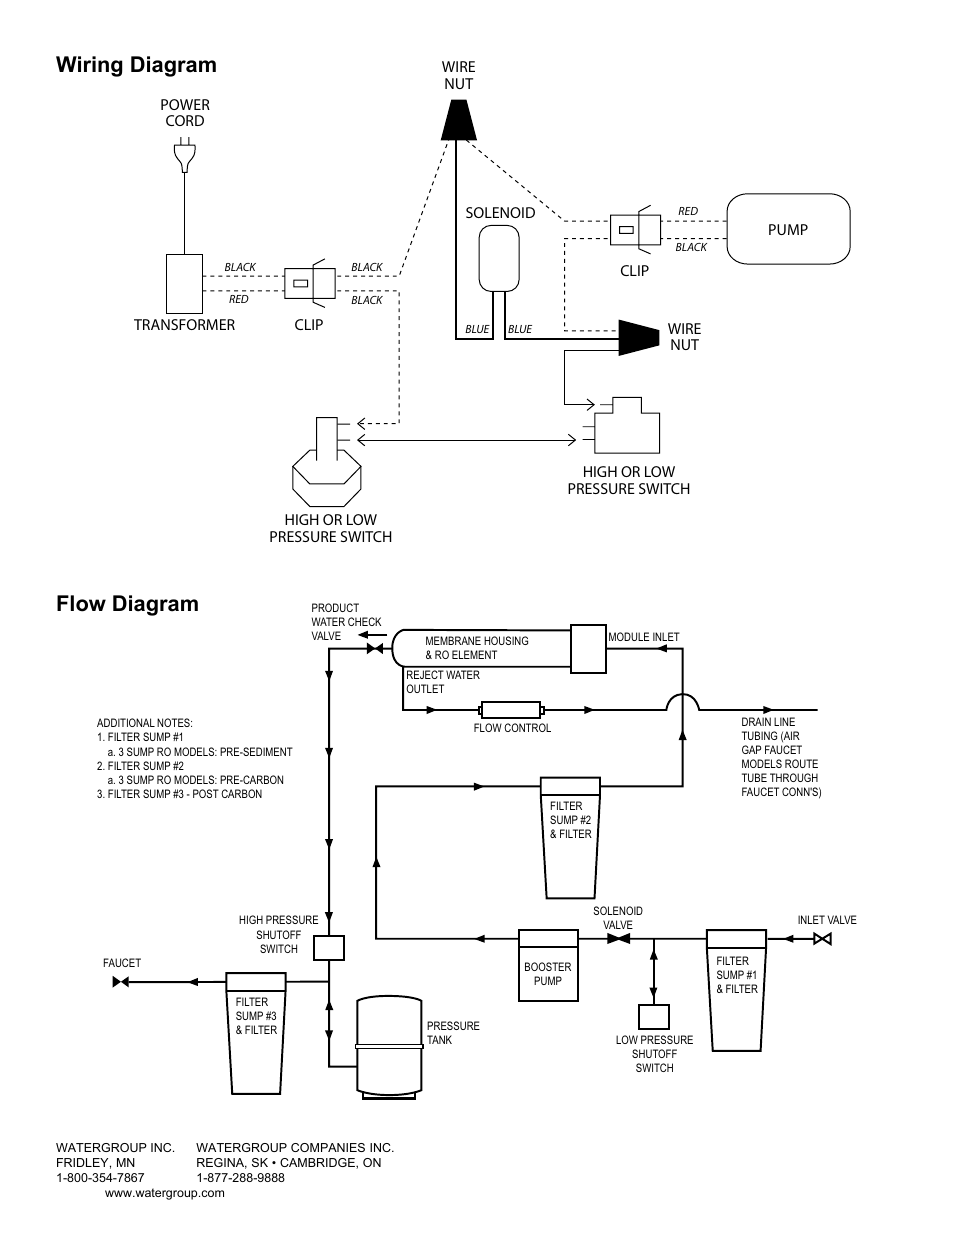 hydrotech ebp75tfc 3sf replacing the auto shutoff with a solenoid valve on economy reverse osmosis c_w booster pump page7 wiring diagram, flow diagram hydrotech ebp75tfc 3sf replacing room wiring diagram at fashall.co